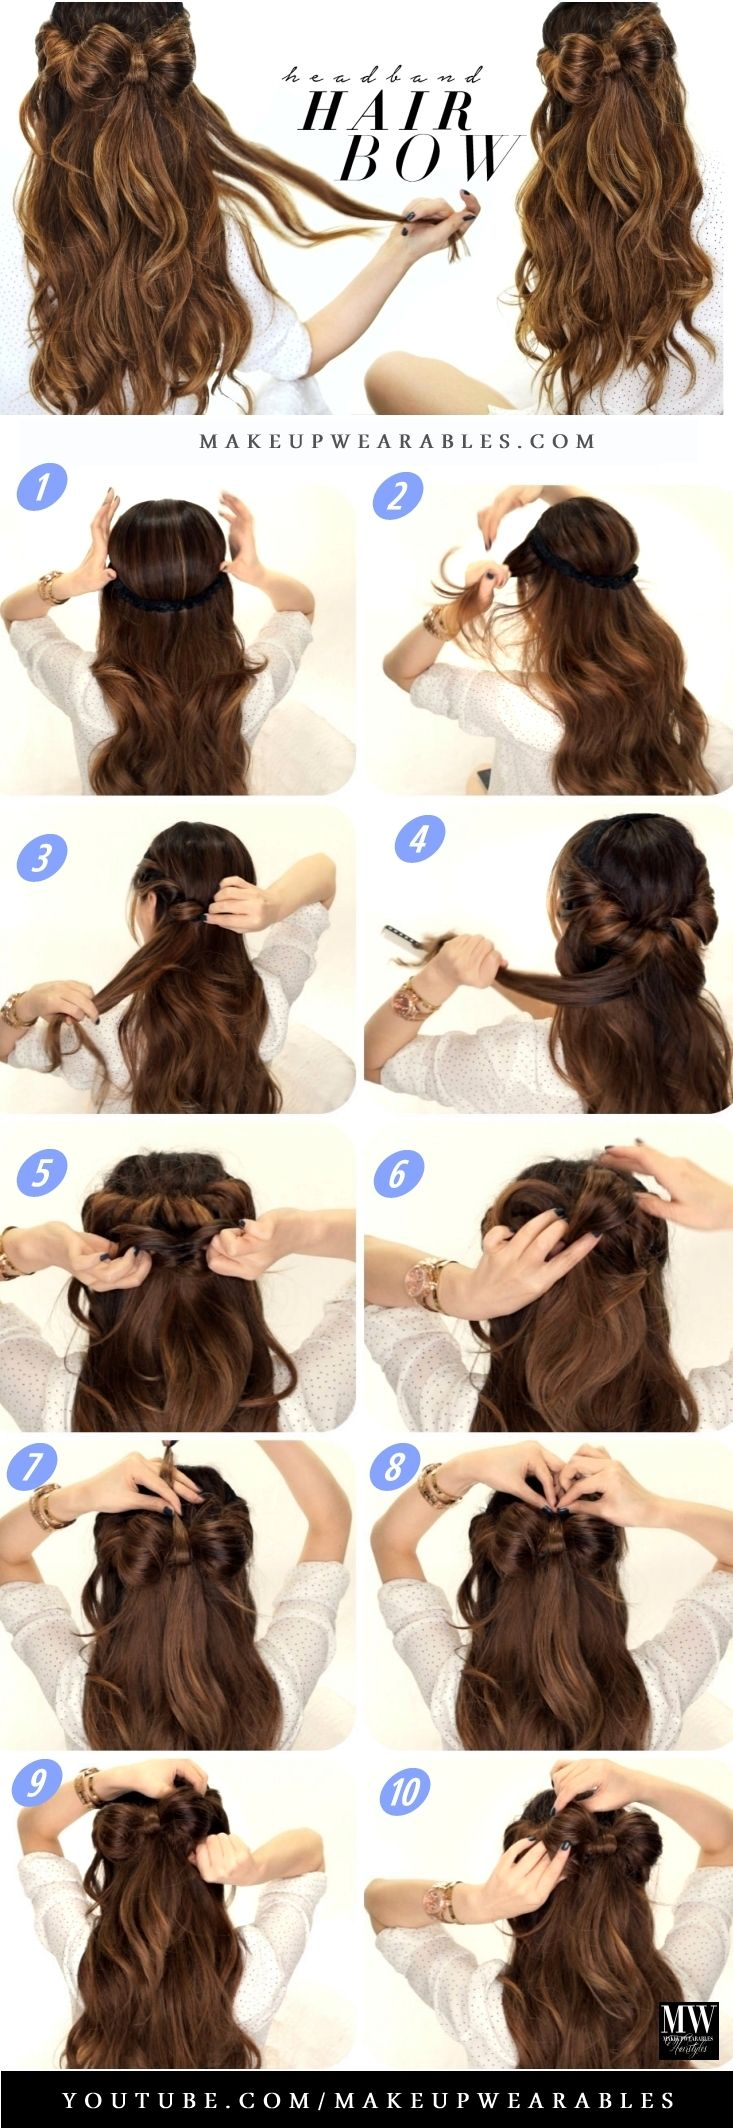 Magnificent 1000 Ideas About Bow Hairstyles On Pinterest Hair Bow Short Hairstyles For Black Women Fulllsitofus